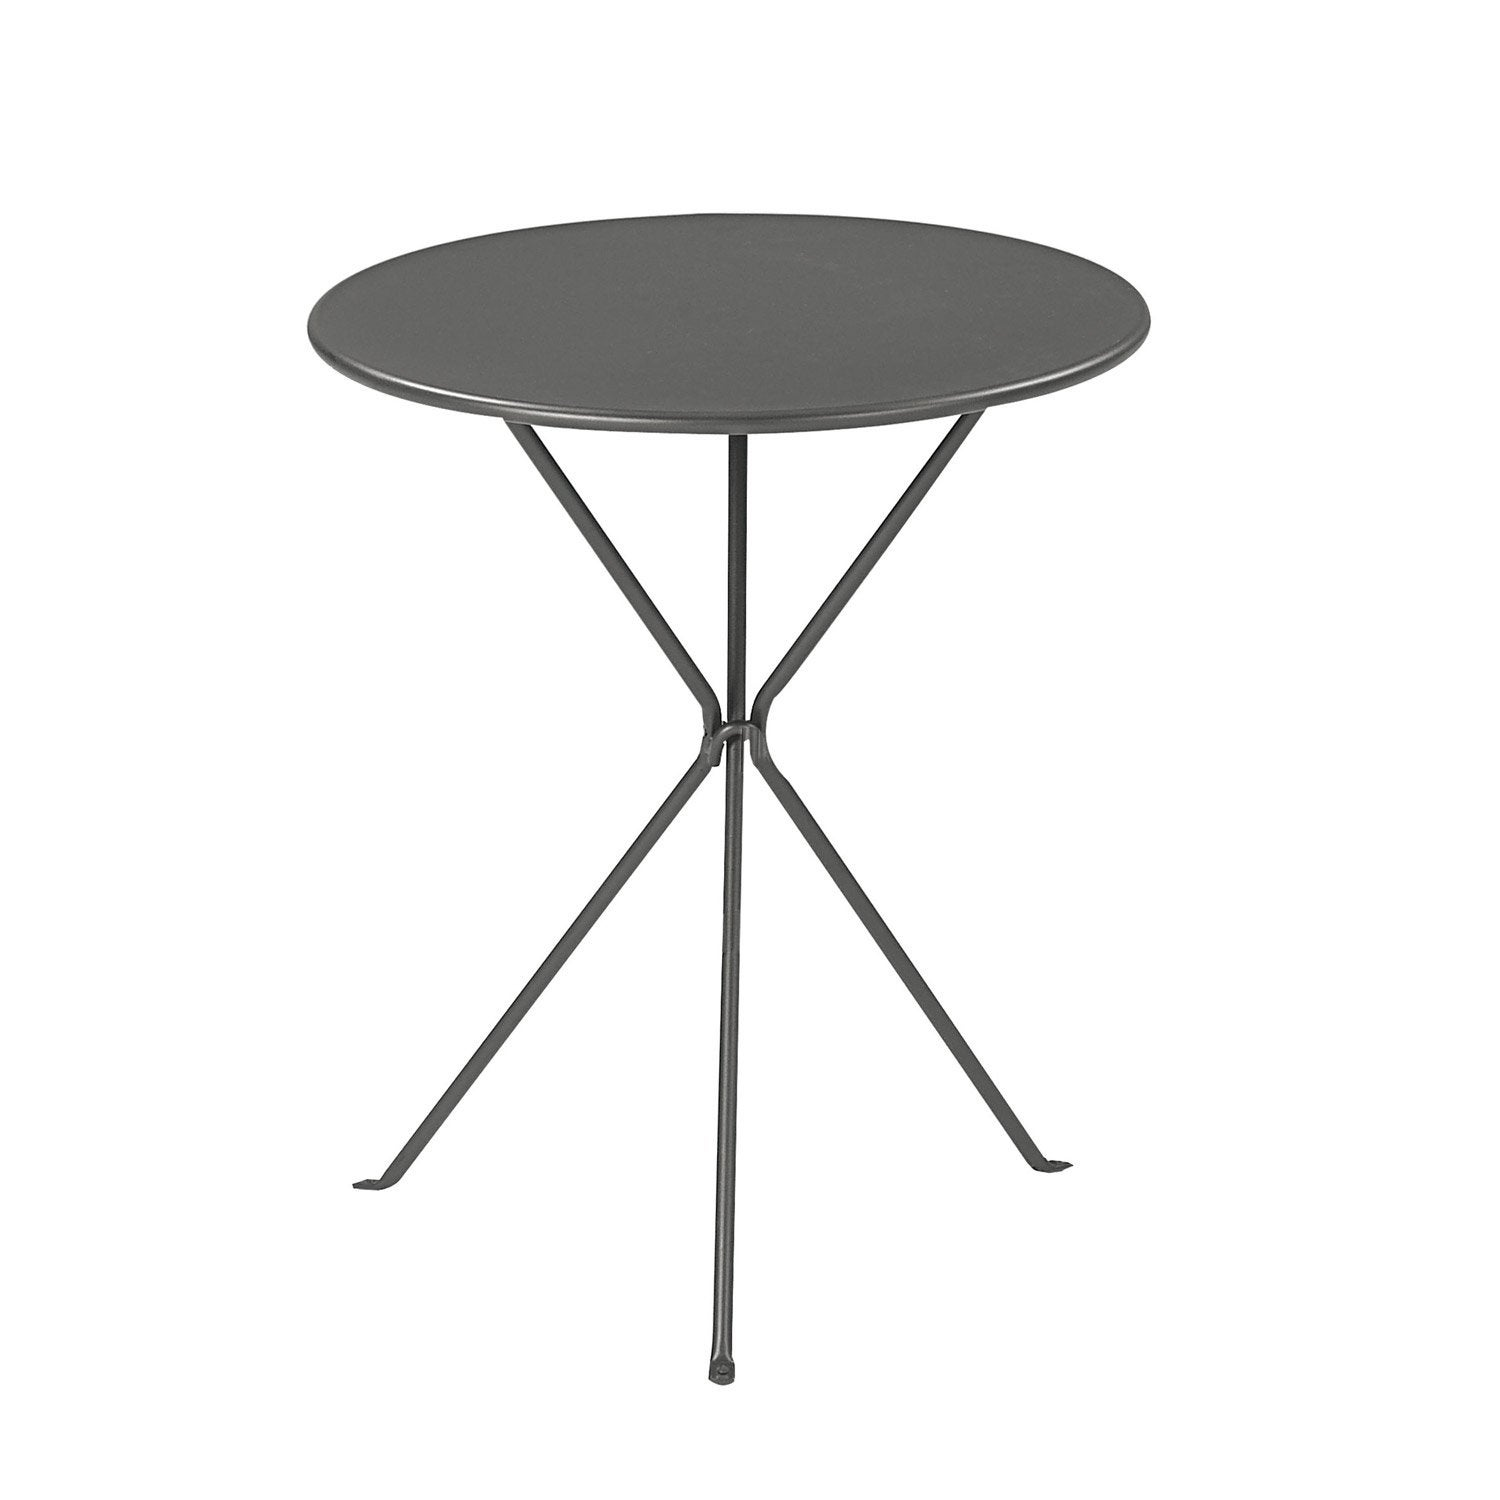 Table de jardin ronde gueridon oasi by emu leroy merlin - Leroy merlin table pliante ...